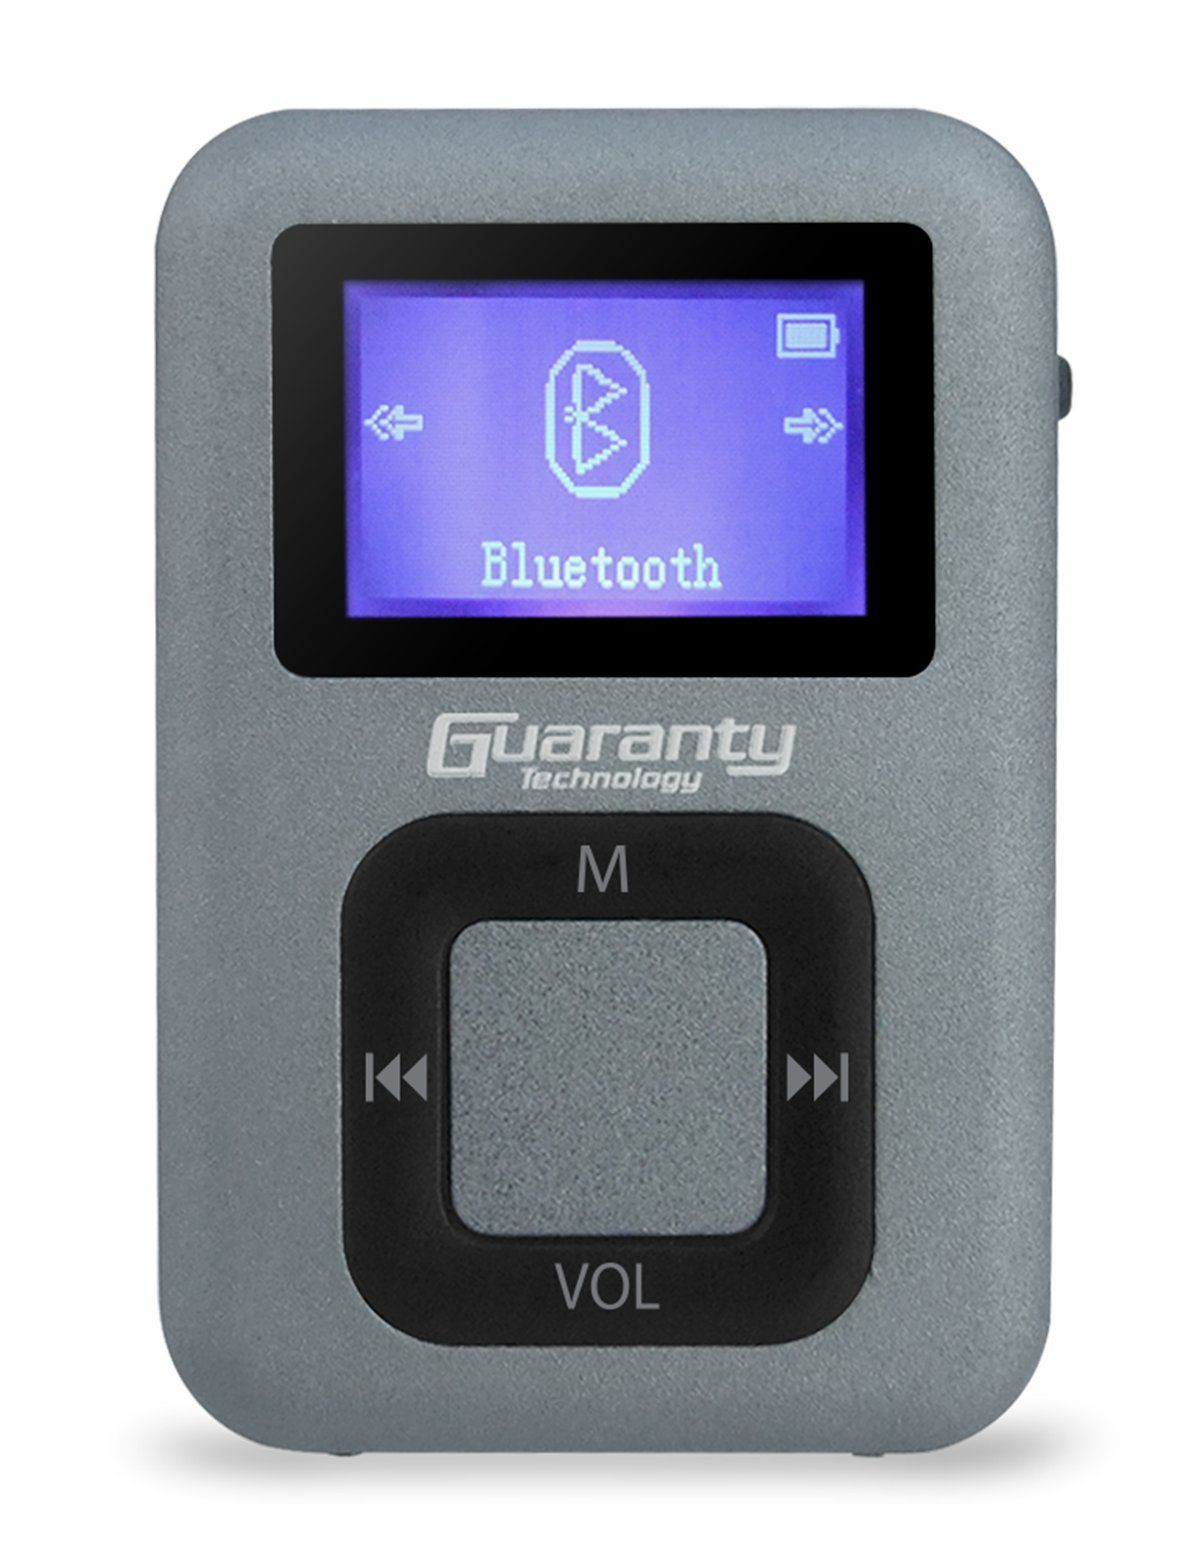 Guaranty 8GB Clip Portable Bluetooth MP3 Music Player with